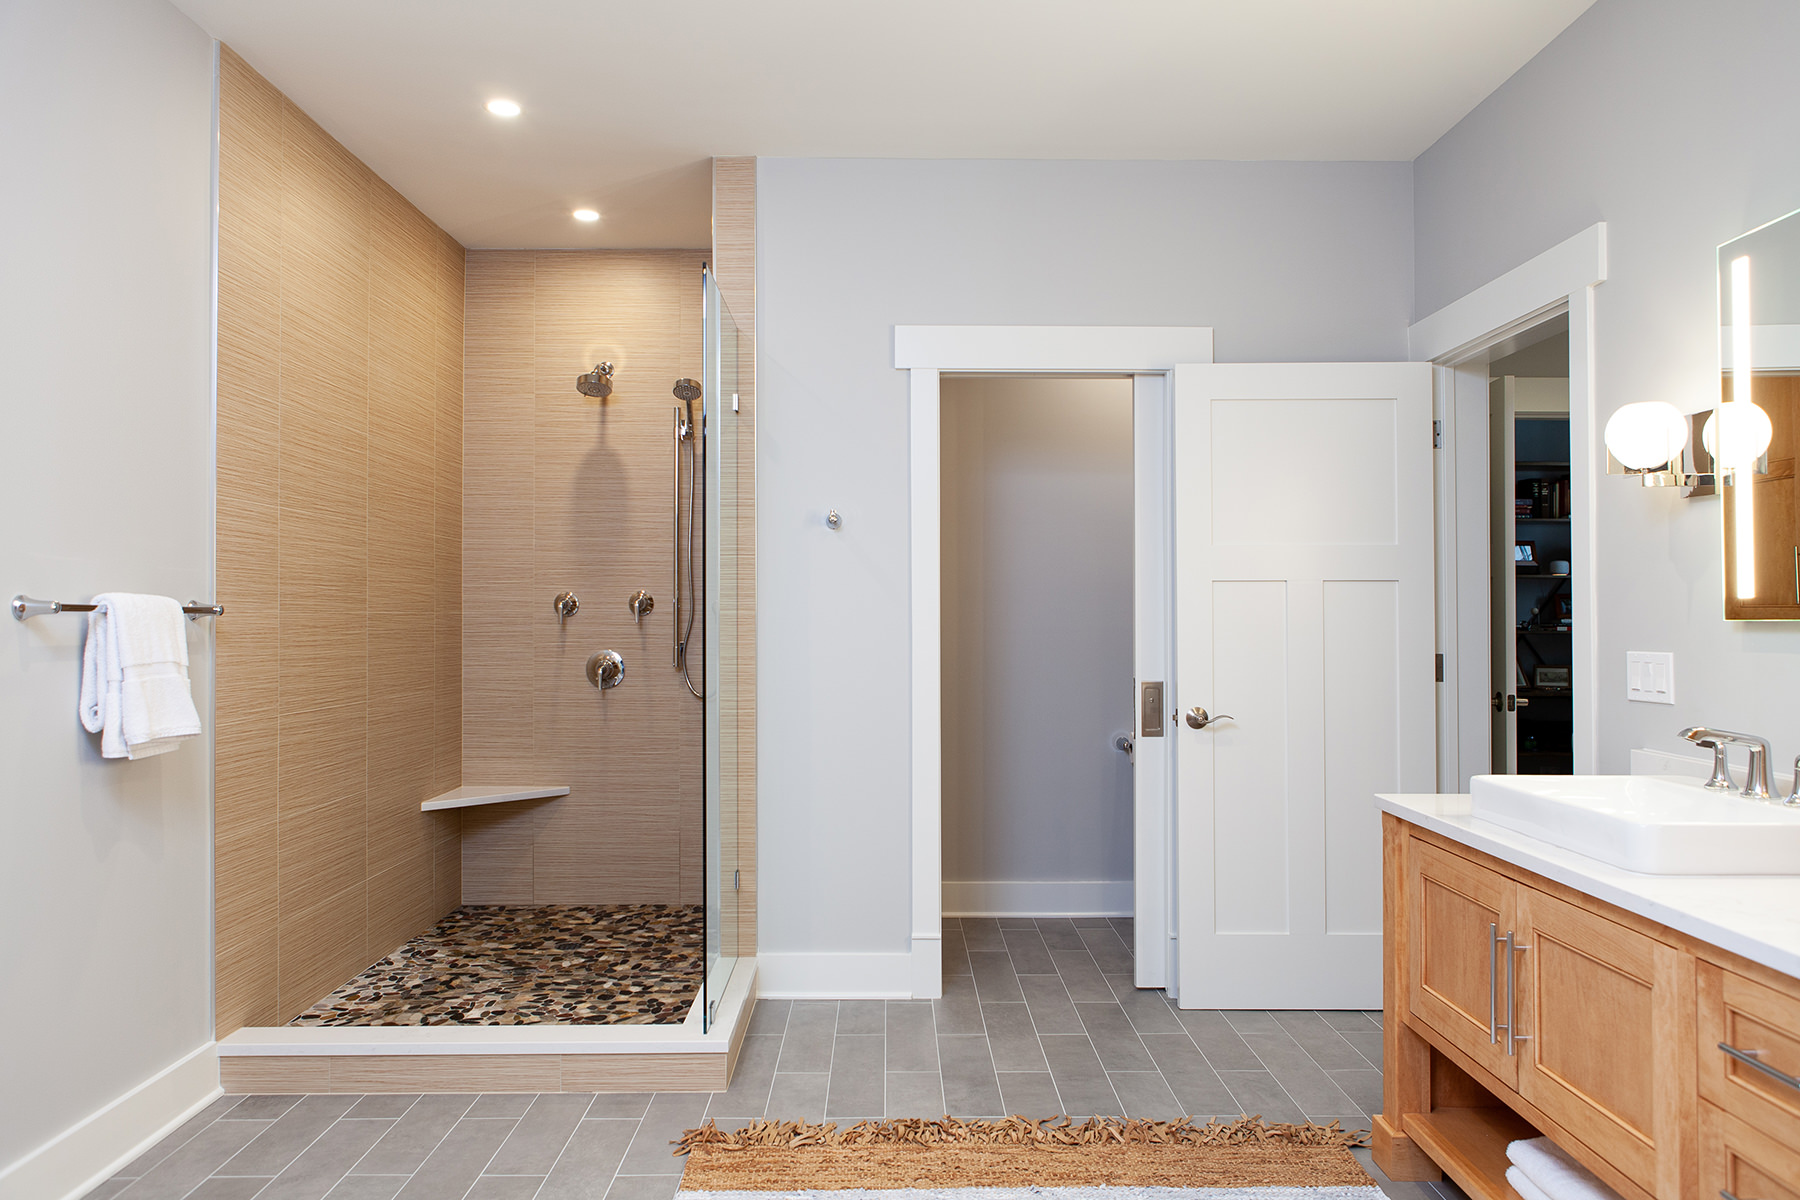 BDS primary bathroom and closet remodel in Libertyville, Illinois